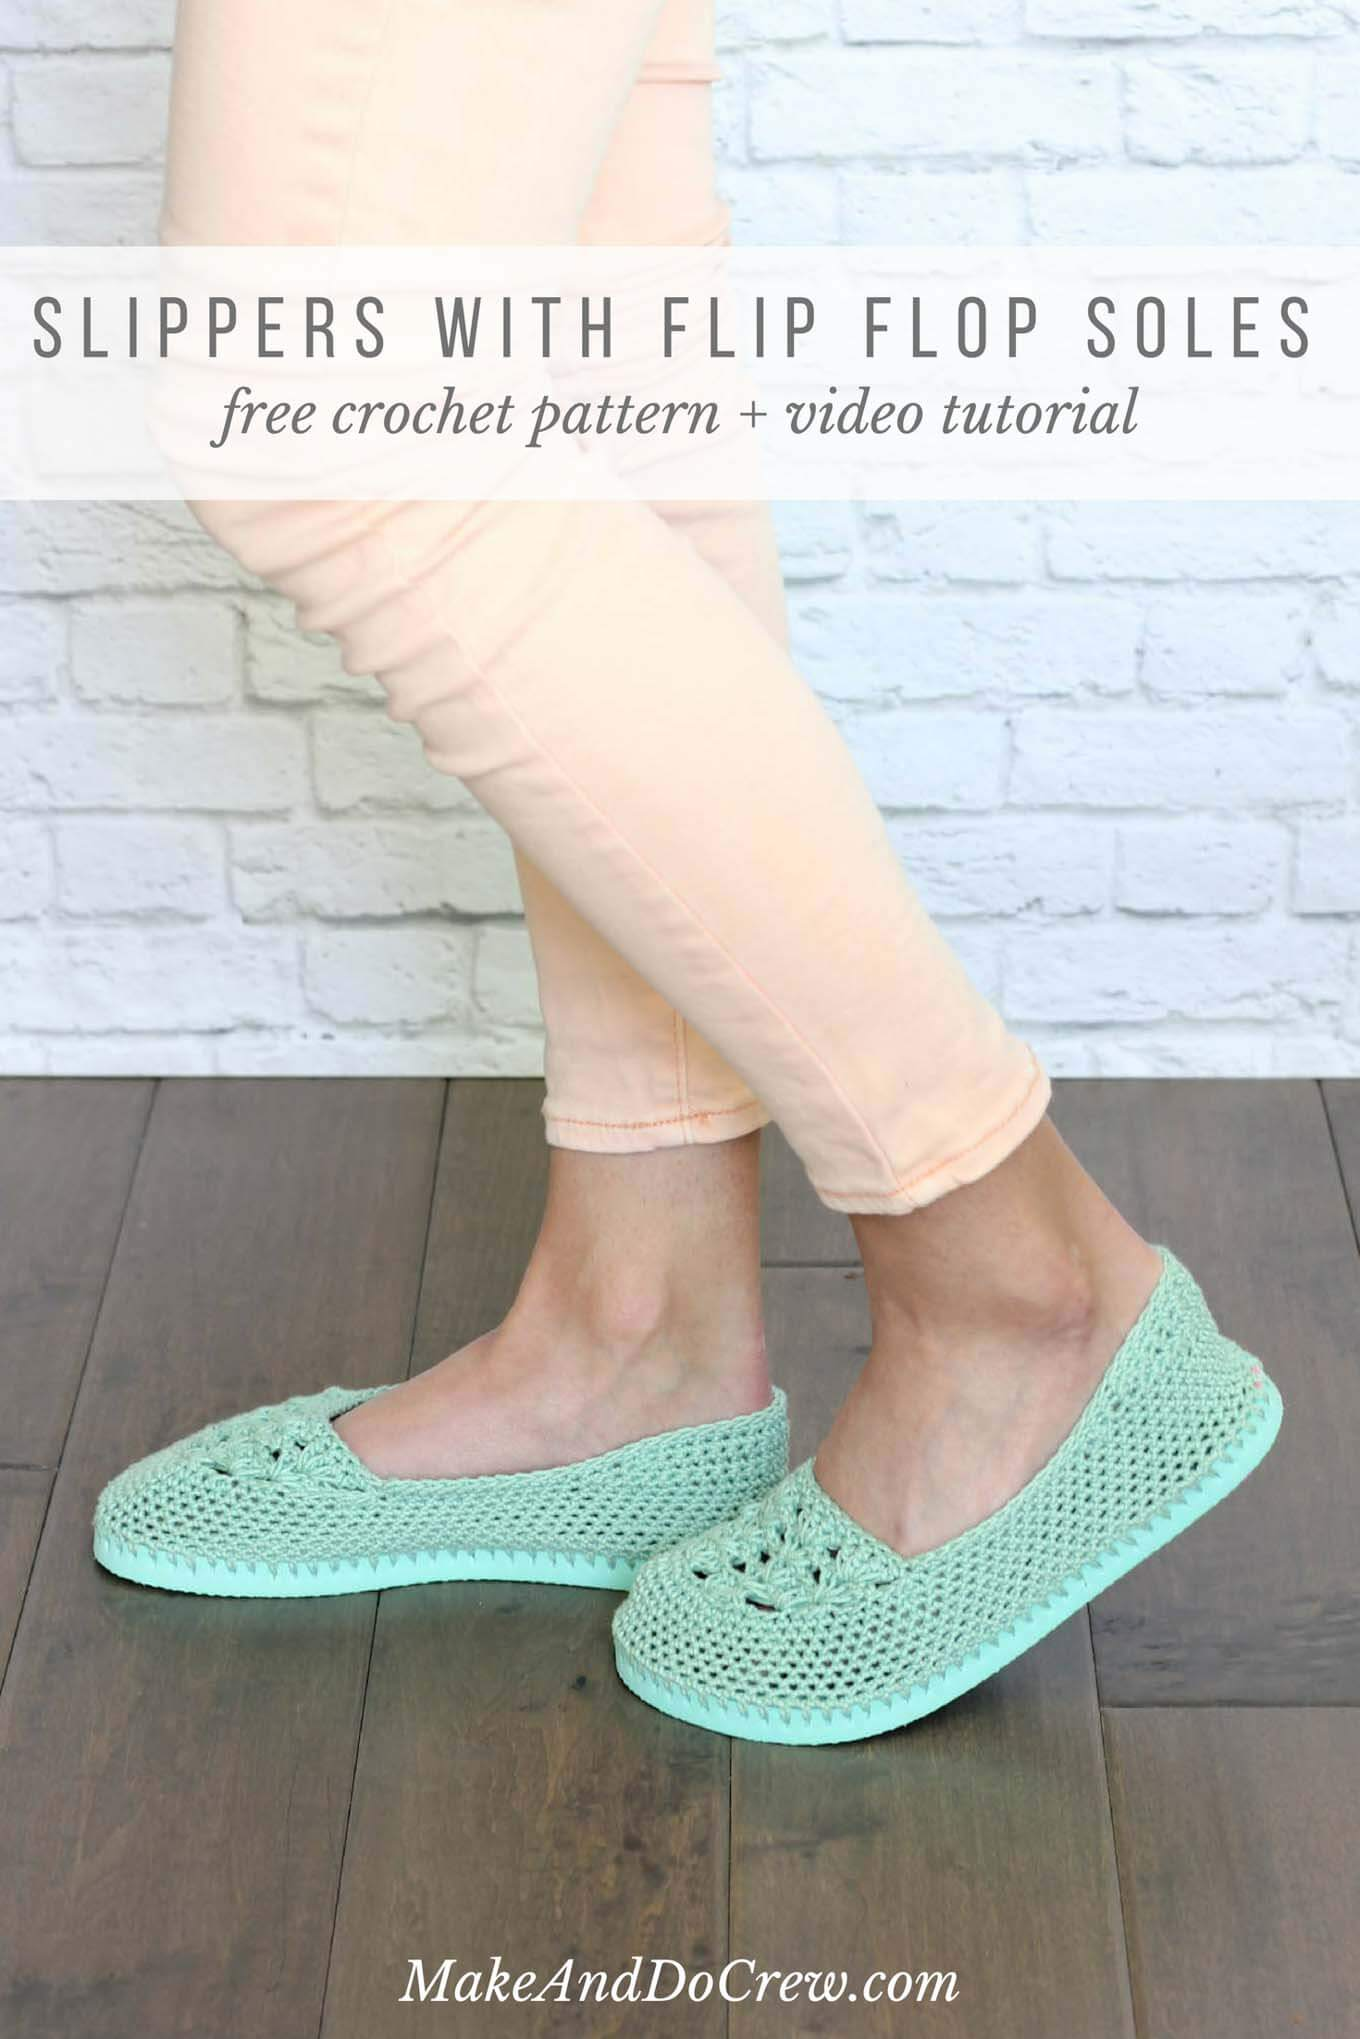 Free Printable Crochet Slipper Patterns : Crochet Slippers with Flip Flop Soles -- Free Pattern ...